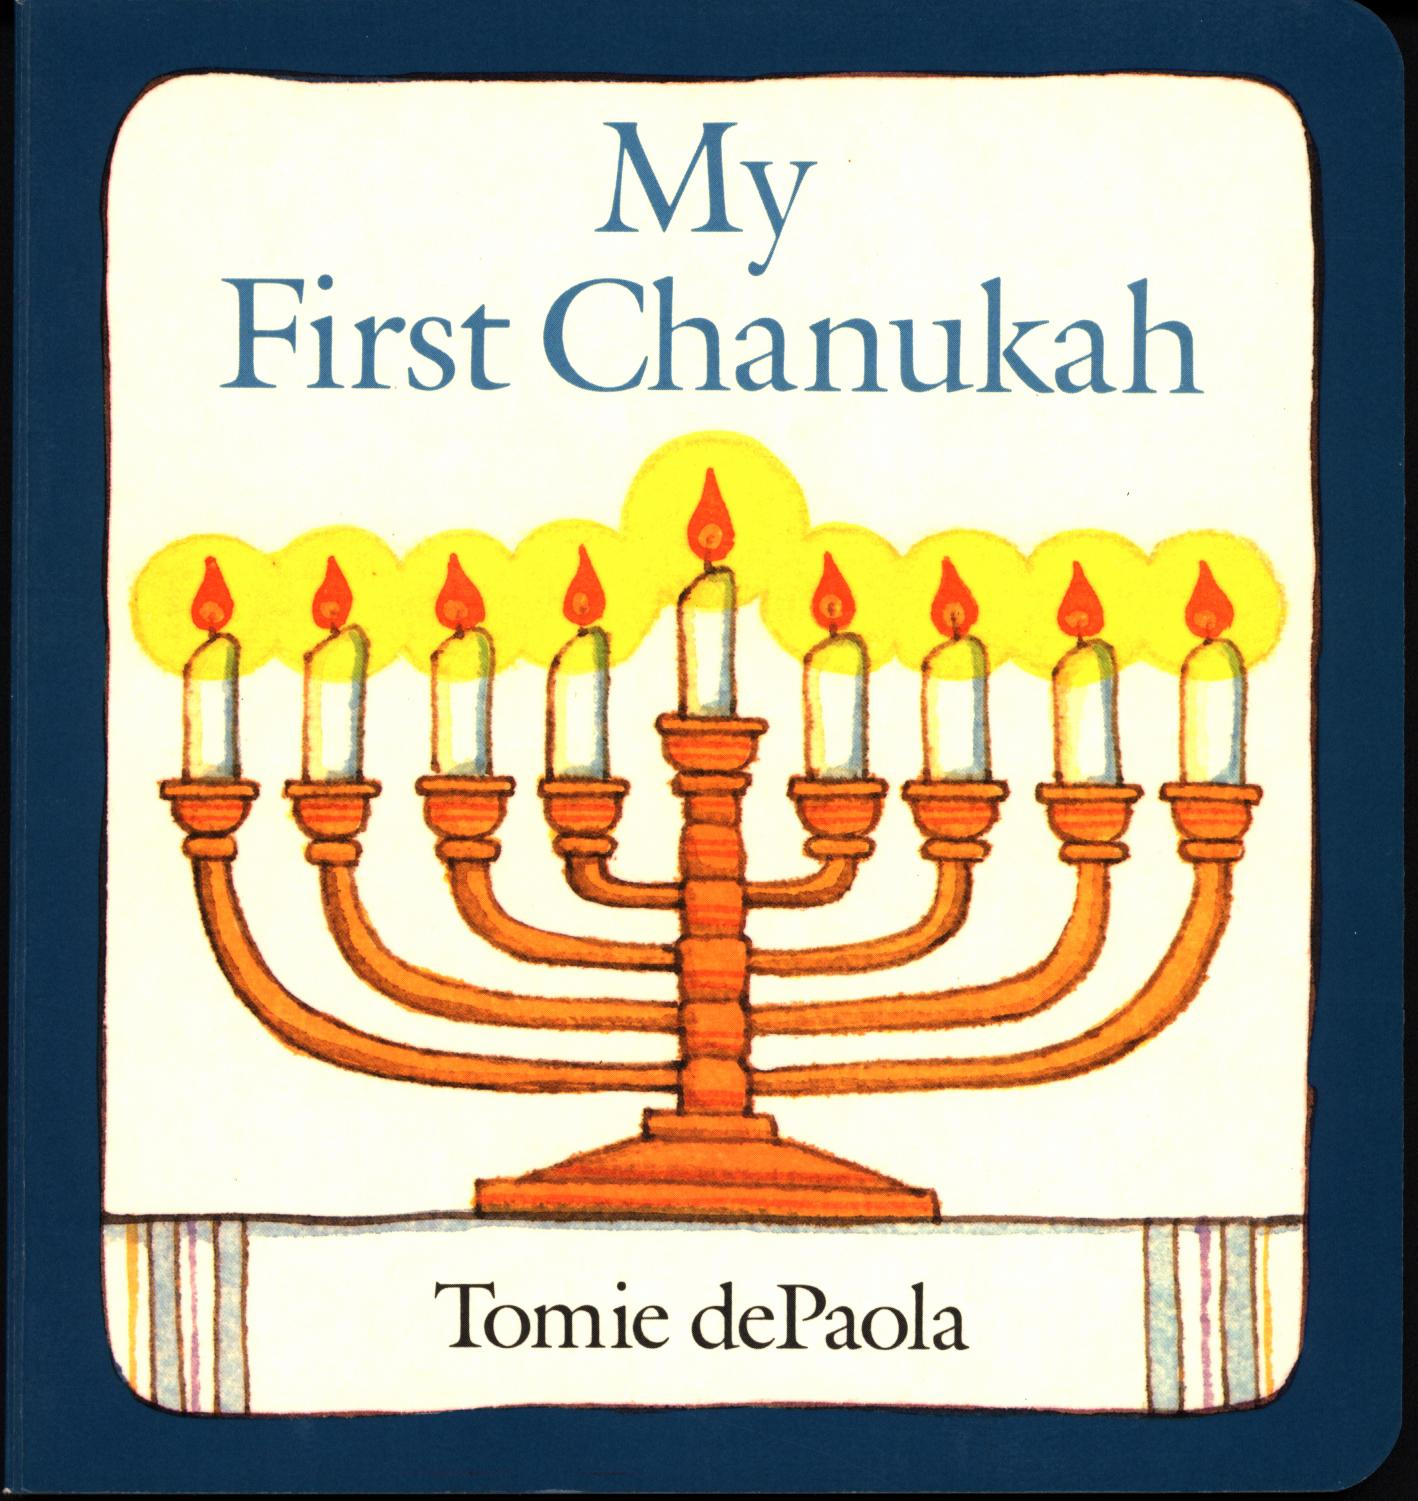 From My First Chanukah, by Tomie dePaola